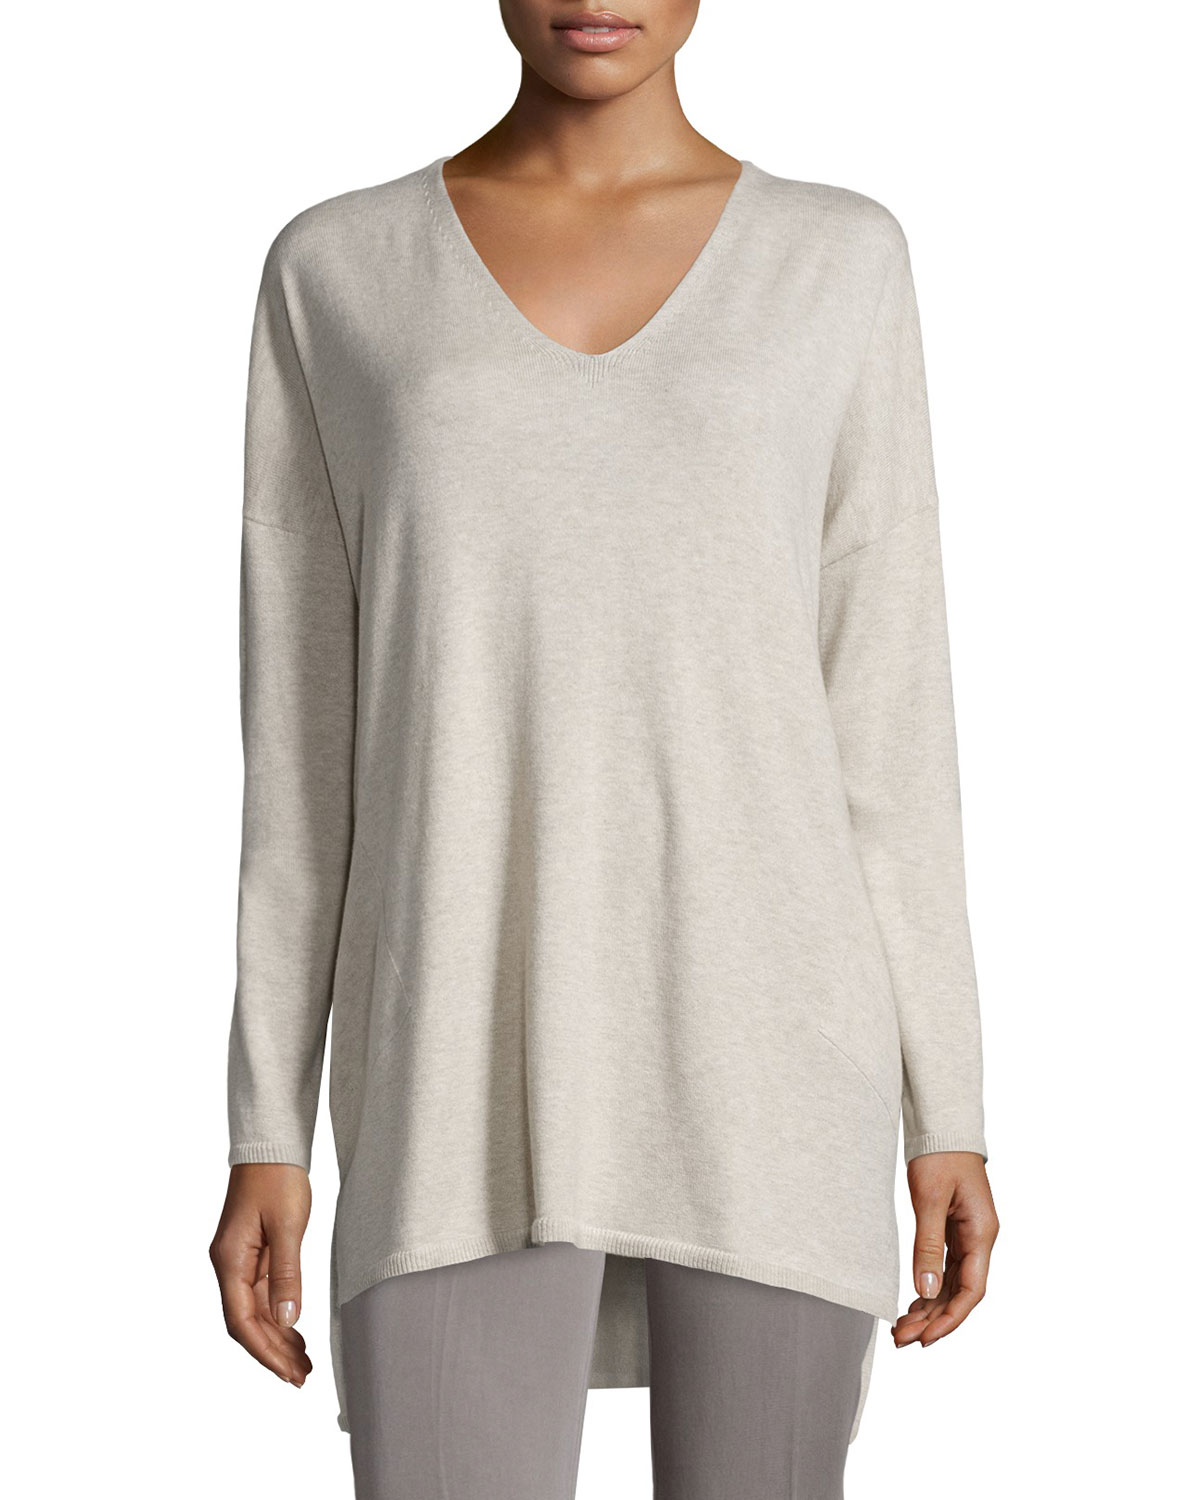 343fd418287 Lyst - Eileen Fisher V-neck Organic Cotton Tunic With Pockets in Gray